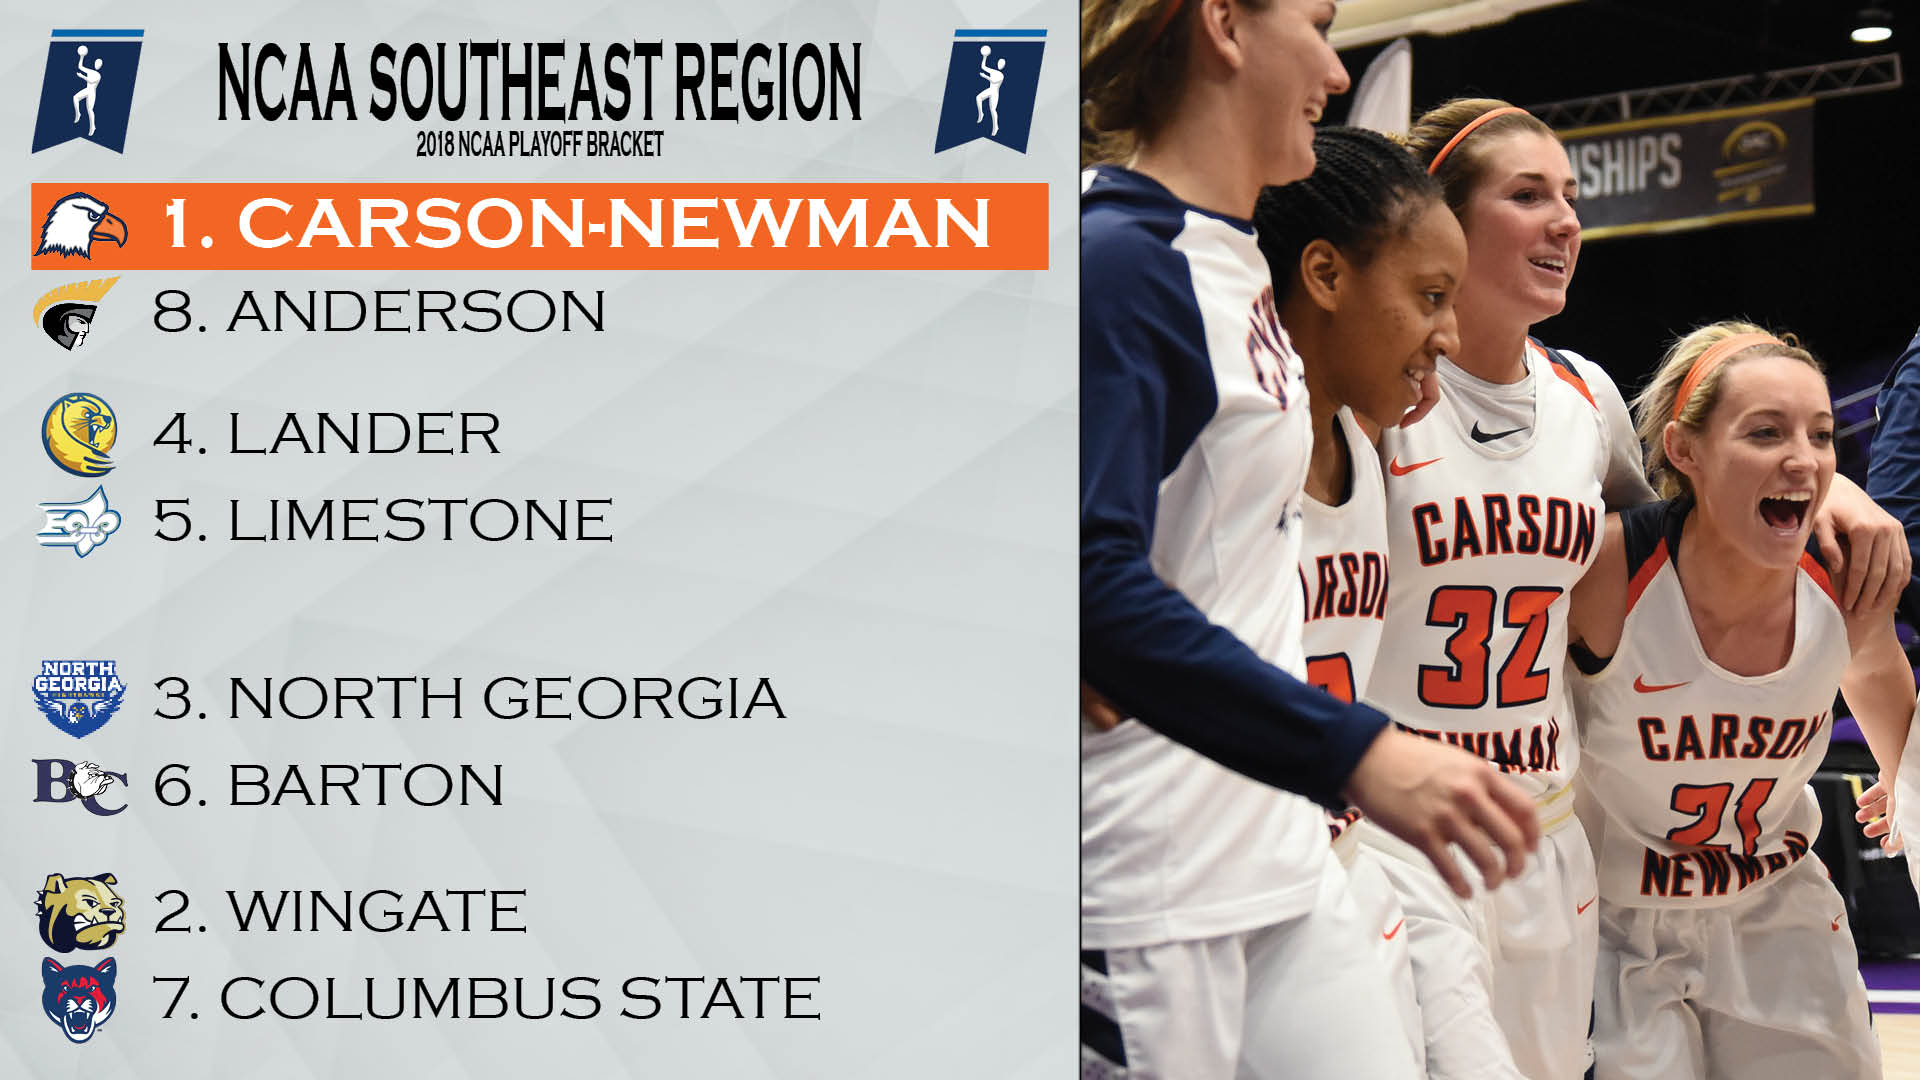 #7 C-N reigns supreme in Southeast Region, will host NCAA Tournament